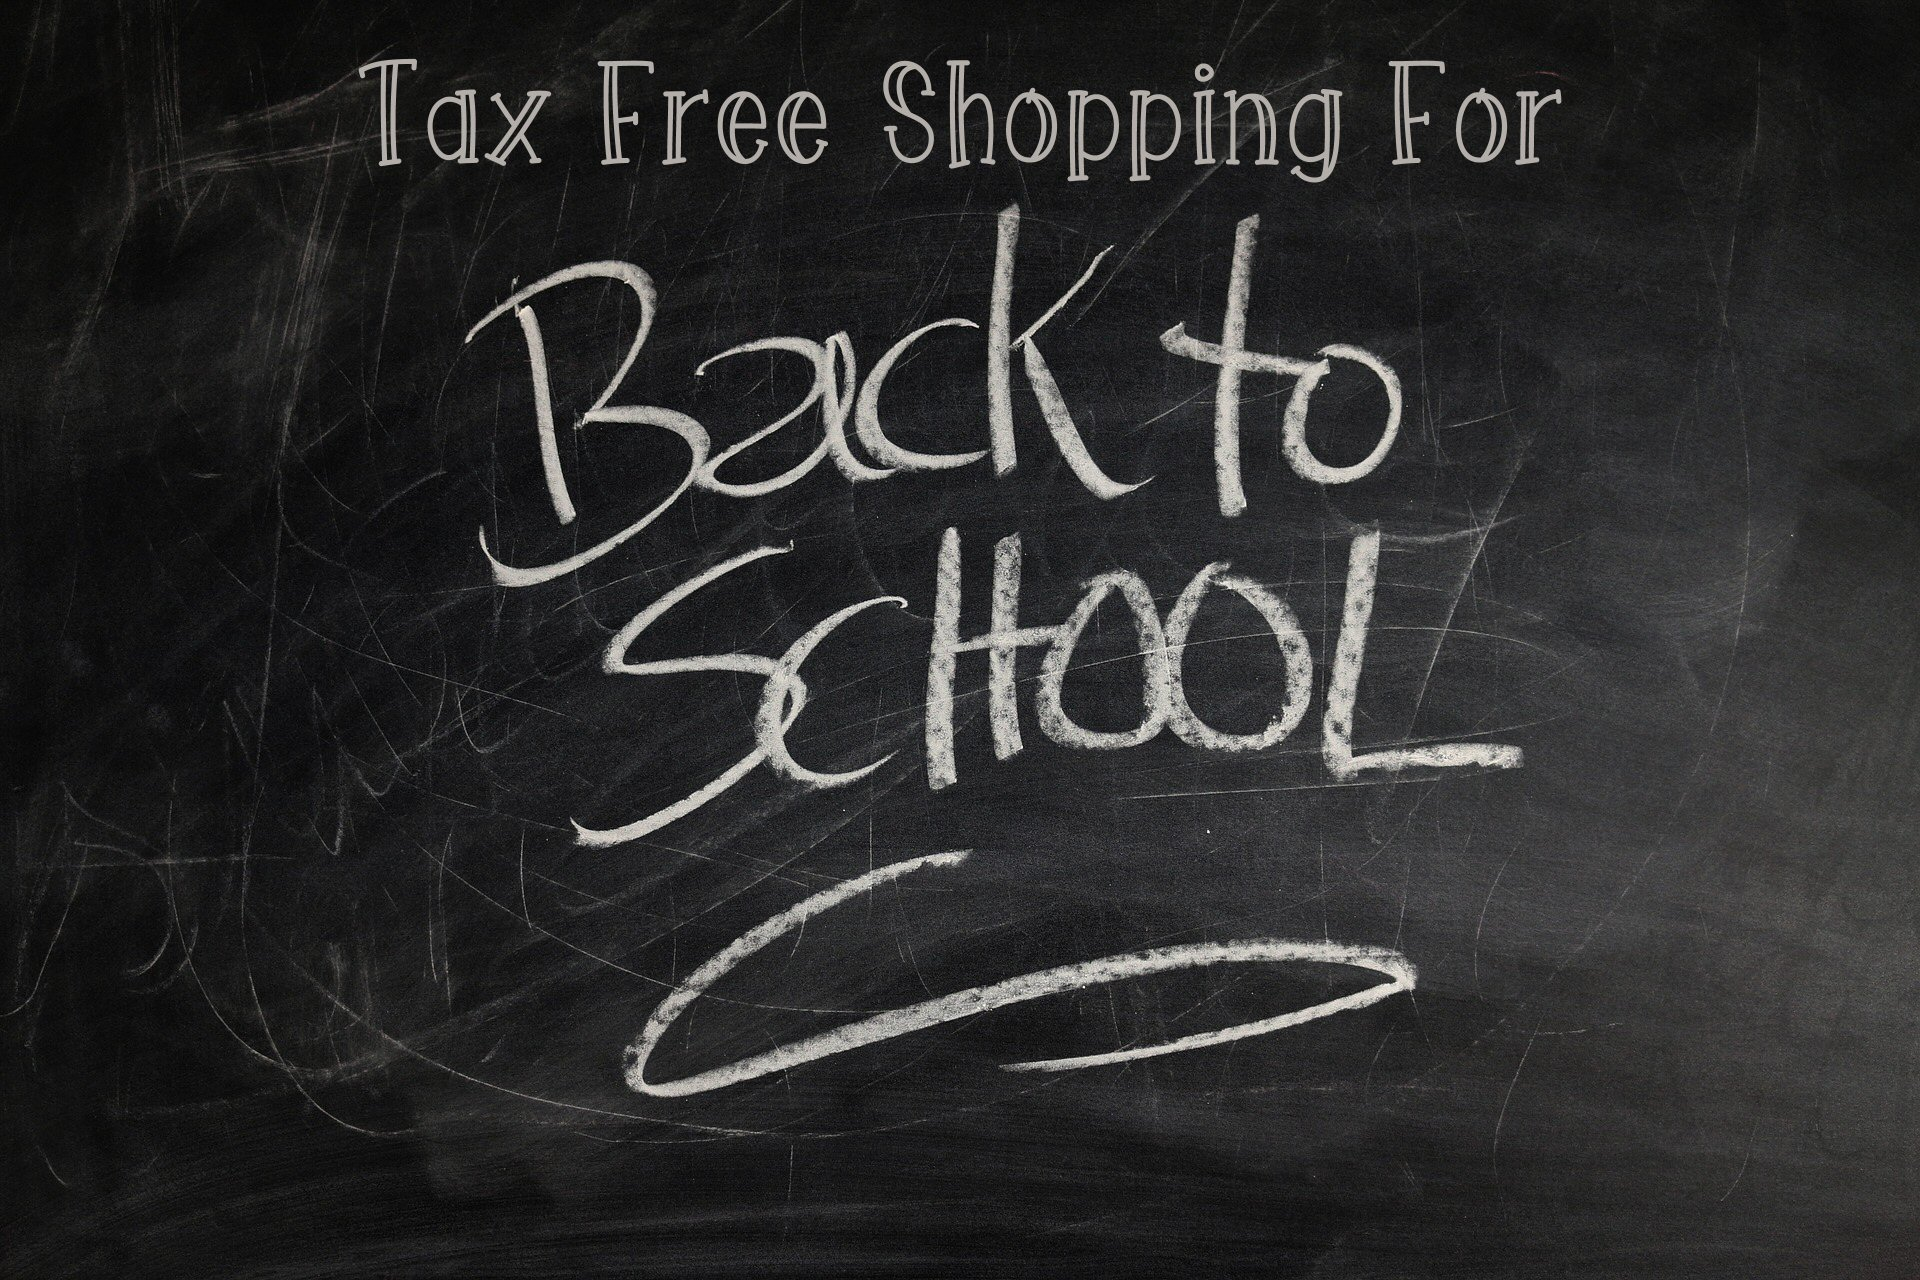 Tax Free Shopping Days for 2017 - Back to School Savings